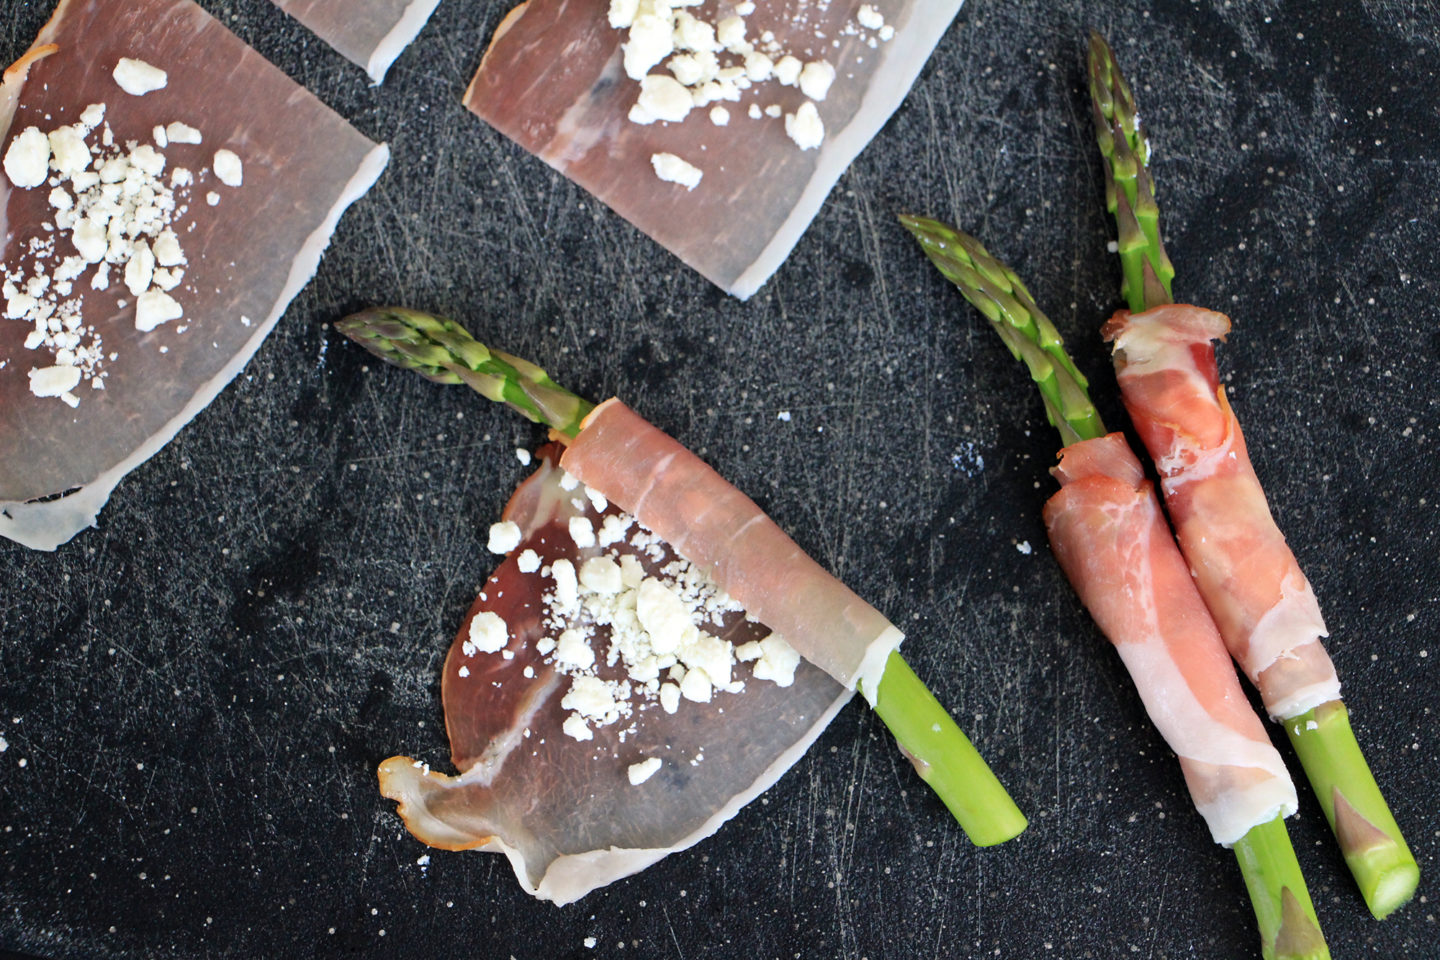 Roll the prosciutto tightly around each asparagus spear